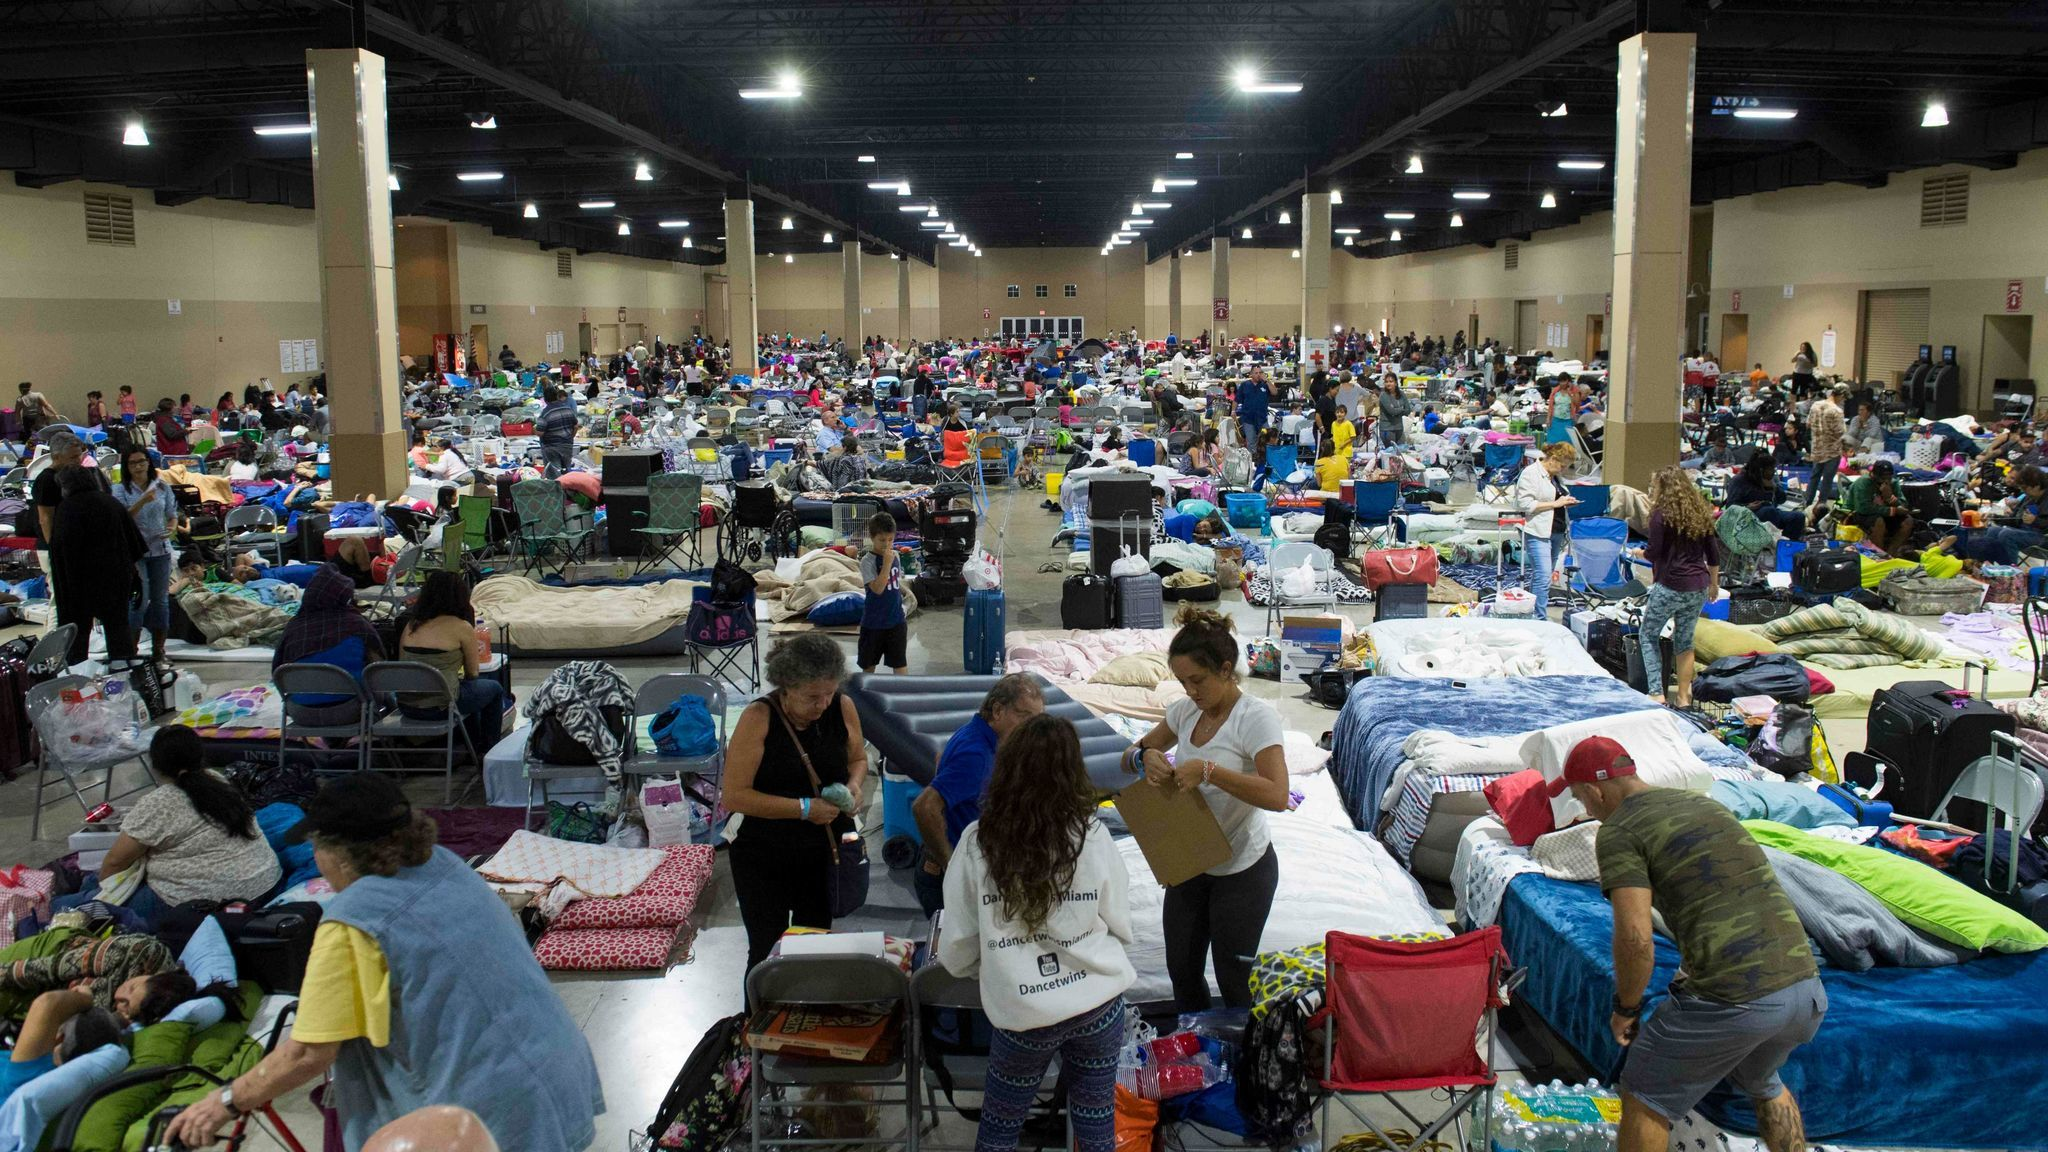 Hundreds of people gather Sept. 8 in an emergency shelter at the Miami-Dade County Fair Expo Center ahead of Hurricane Irma.